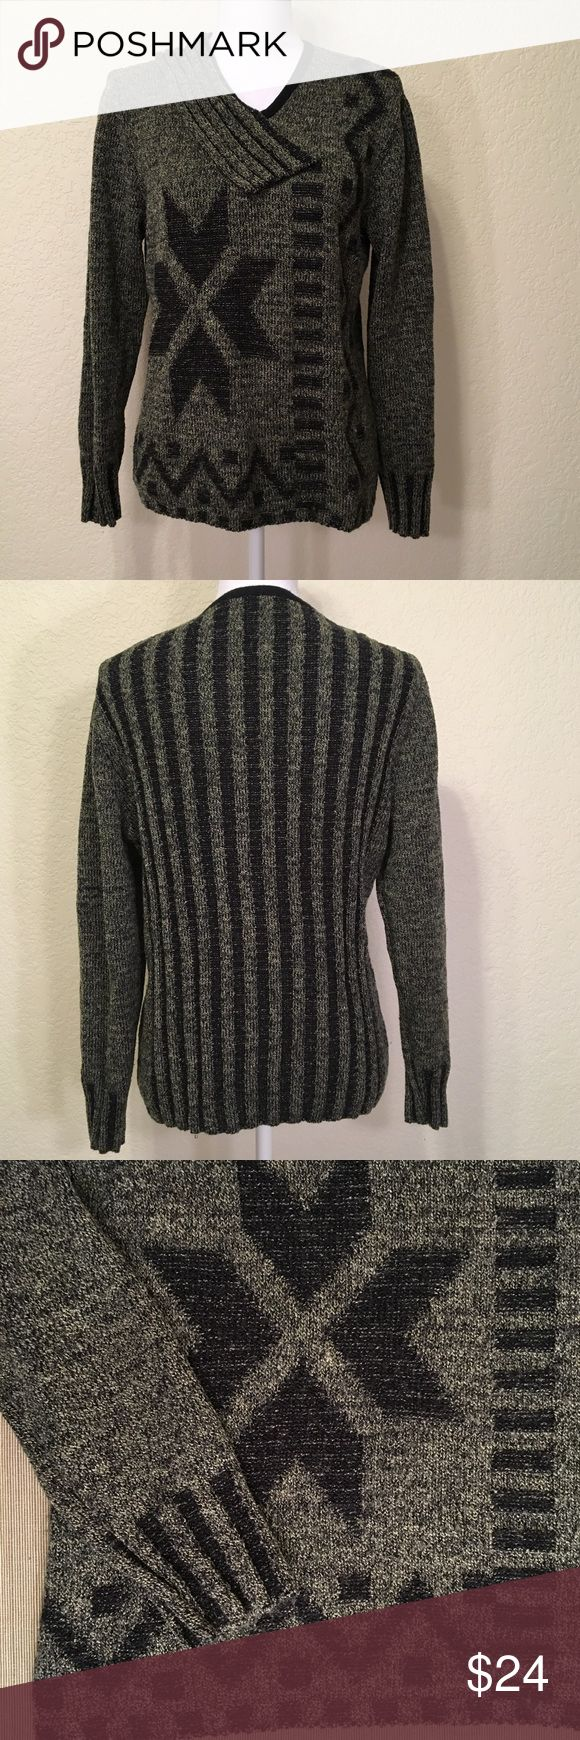 """Skovhuus Grey & Black Sweater Size L.  Excellent condition.  Star/stripe design.  Unique neckline.  Length shoulder to hem: 24"""".  Bust: 42"""".  Waist: 38"""".  Bottom of sweater: 40"""" around. Sleeve length: 24"""".  Cuff width: 3.5"""".  47% cotton, 34% acrylic, 19% nylon – some stretch.  Machine wash cold, line dry.  Love it but not the price - I'm open to (reasonable) offers or consider bundling 2 or more items for an additional 15% off and combined shipping!     Check out my reviews - I only sell…"""